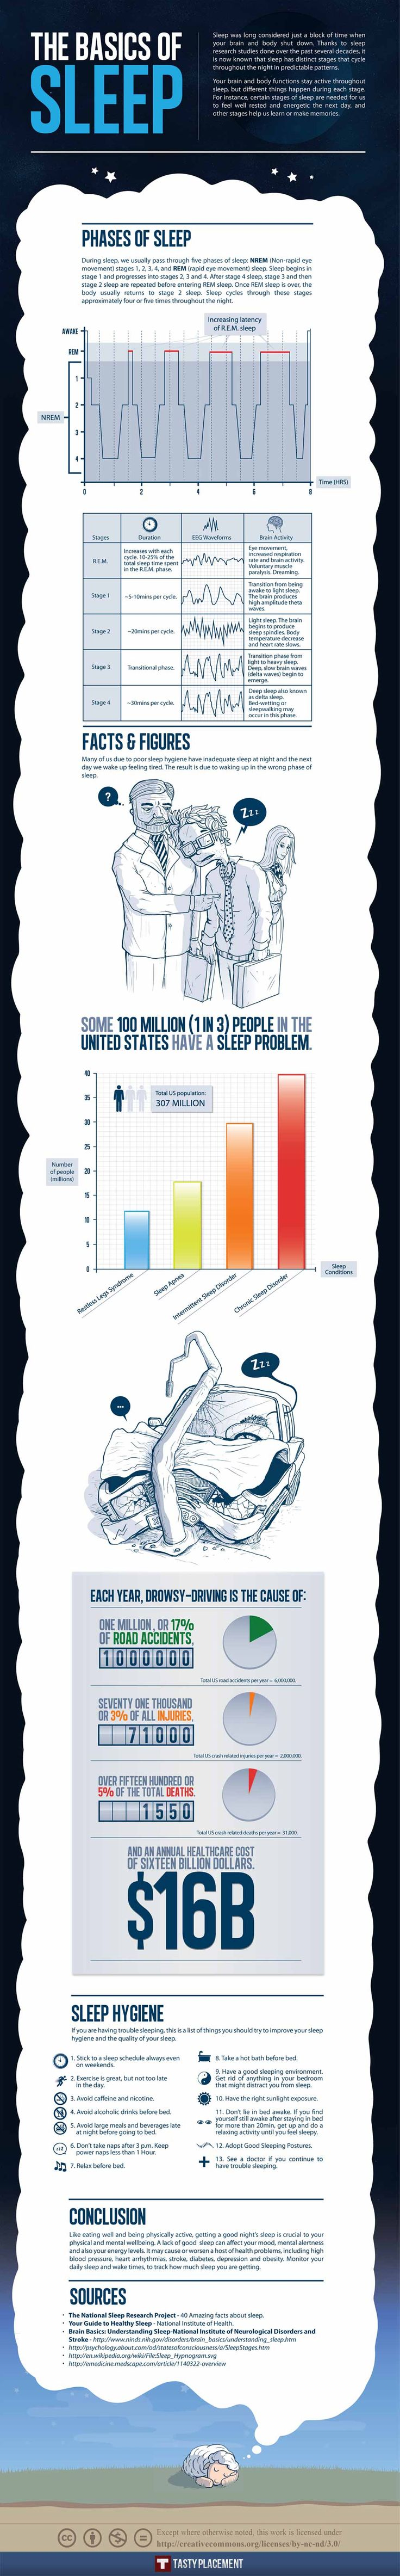 Sleep Basics & How They Affect You by tastyreplacements:  Certain stages or sleep are needed for us to feel well rested and energetic the next day and other stages help us learn or make memories. #Infographic #Sleep